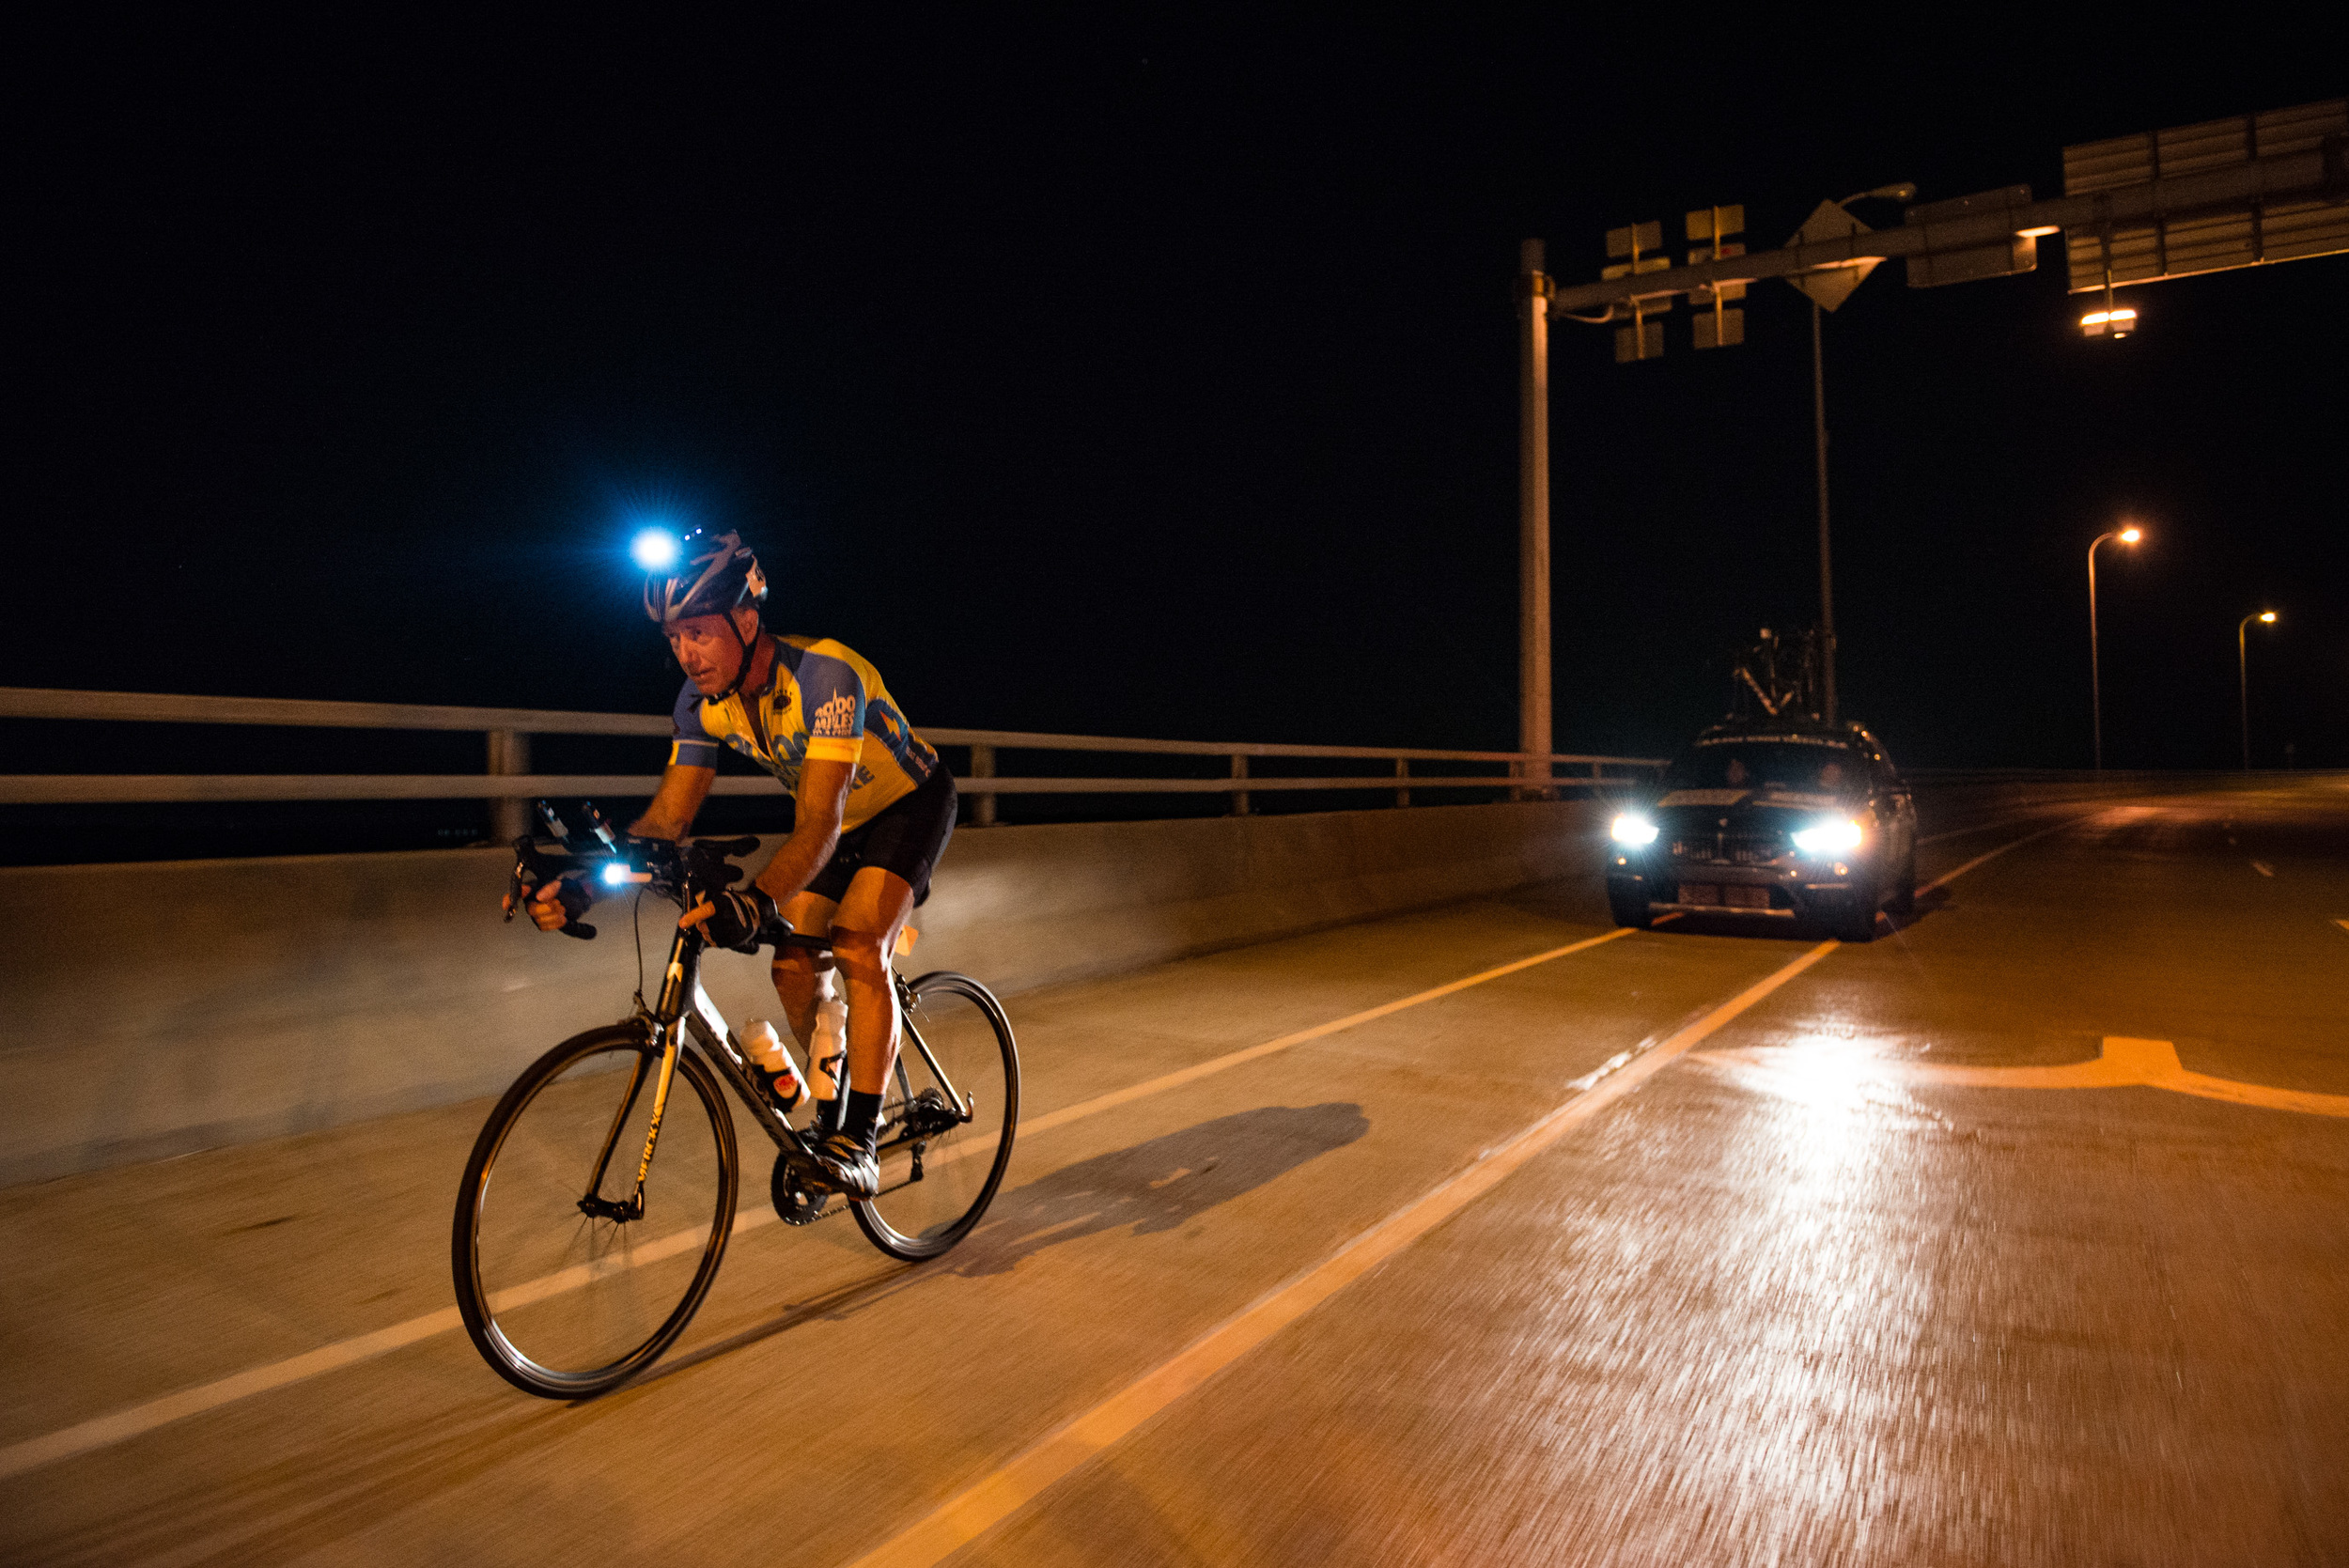 Marshall Reeves passes the Mississipi River bridge on the night of June 23rd, 2016, making the time cutoff. For many racers just getting to this point is a huge accomplishment because it represents completing two-thirds of the race.